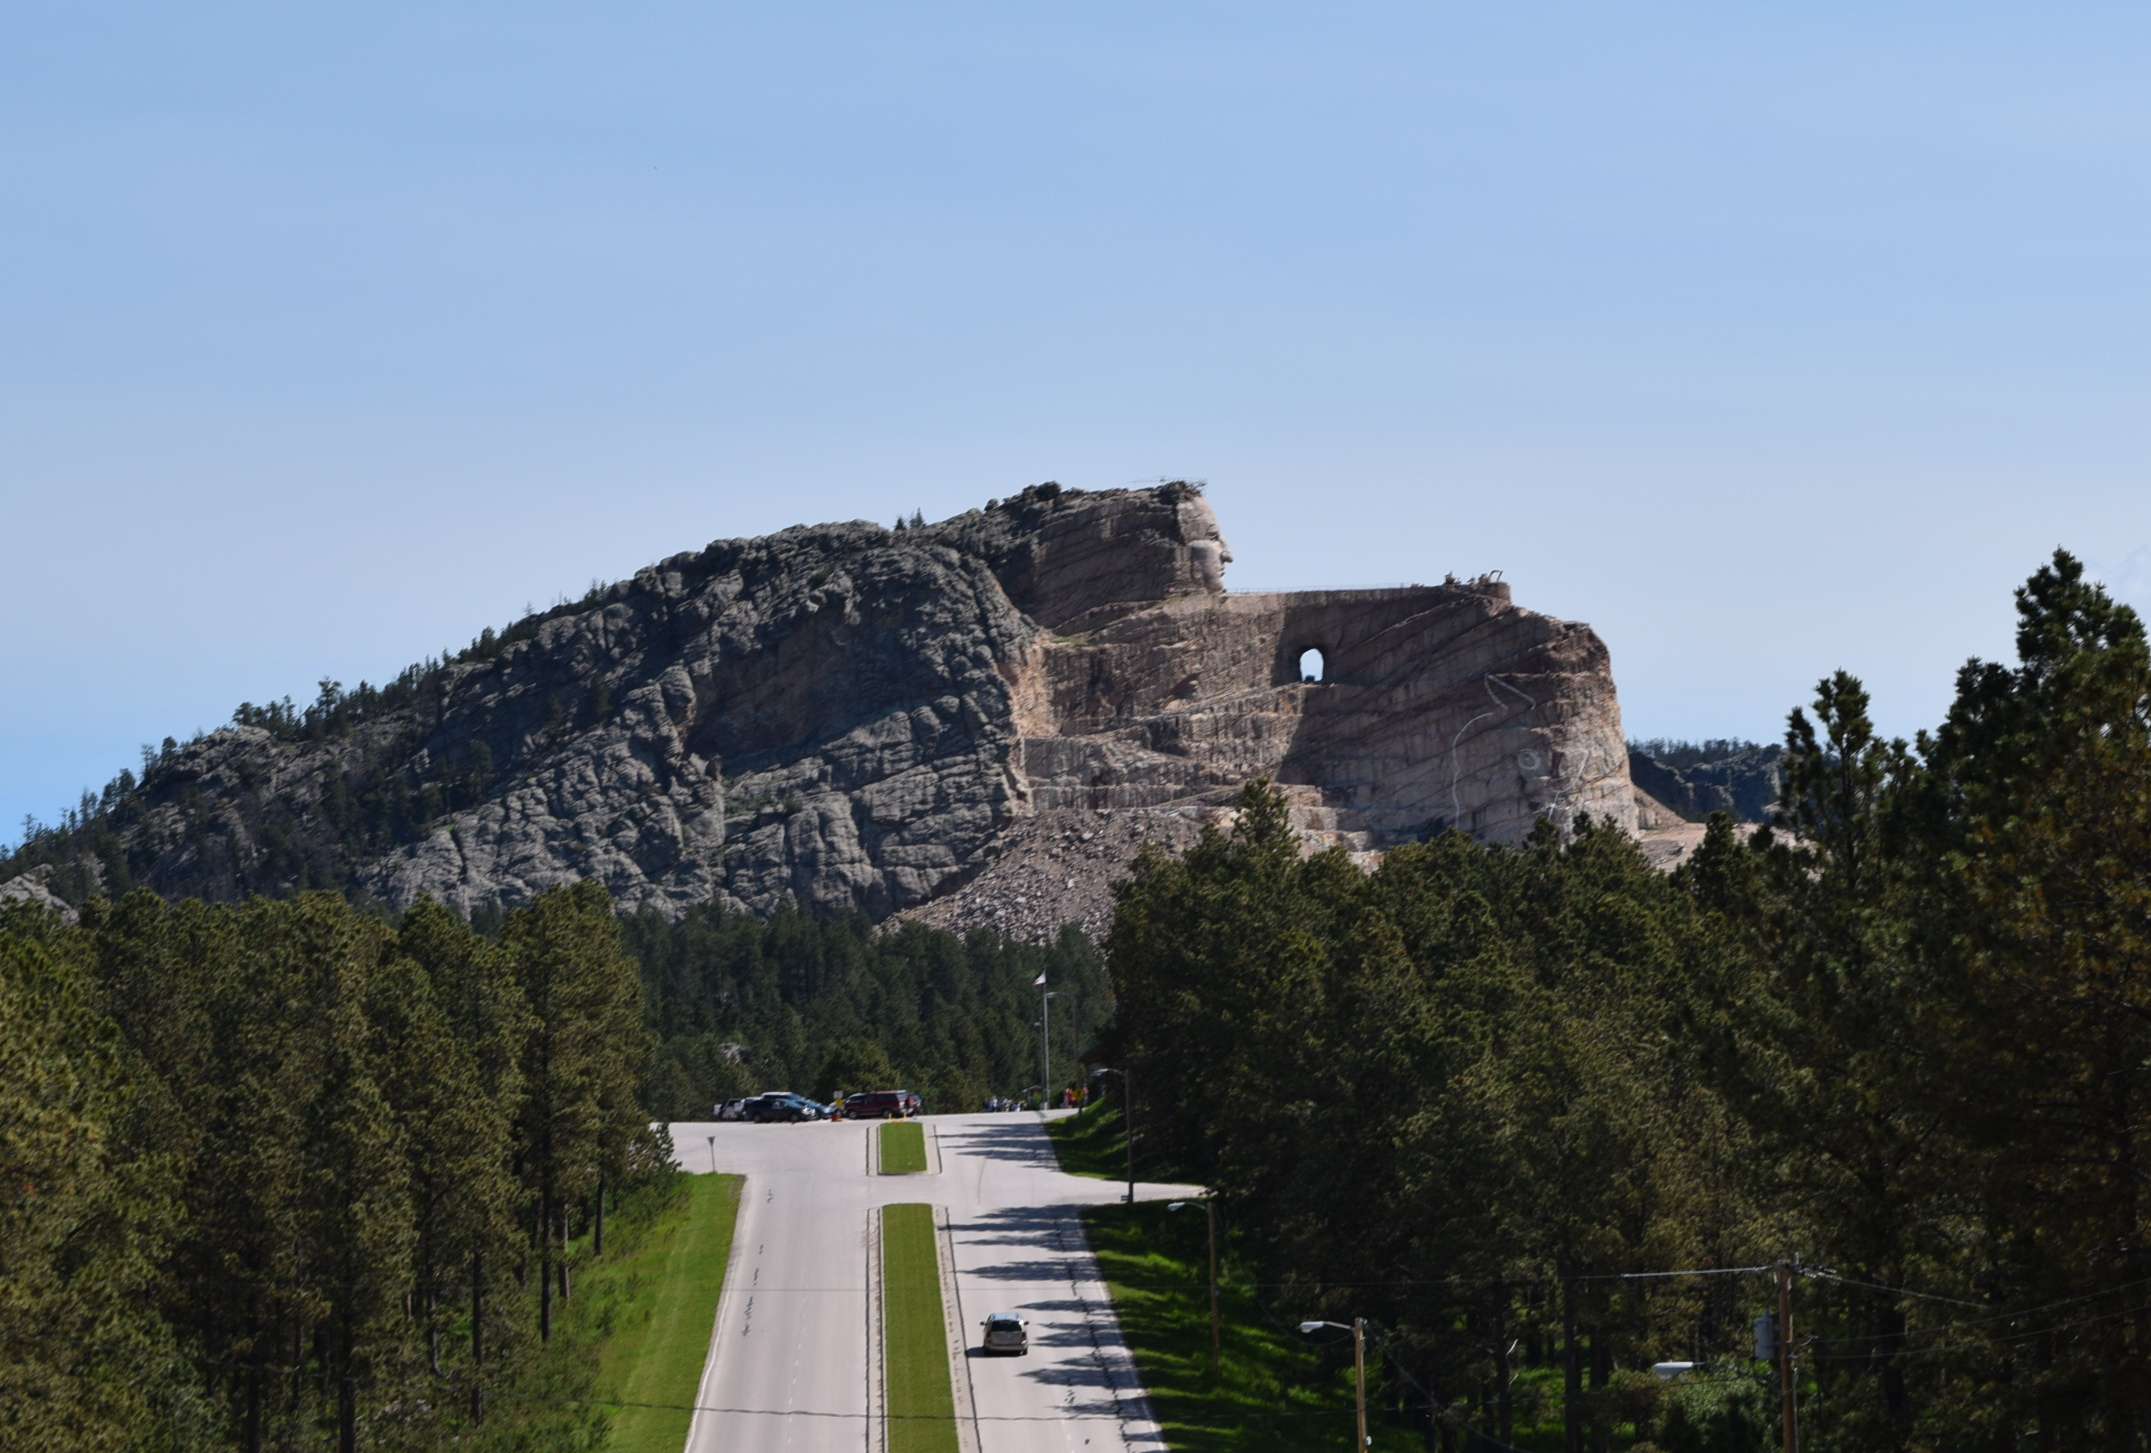 Driving toward the Crazy Horse monument.